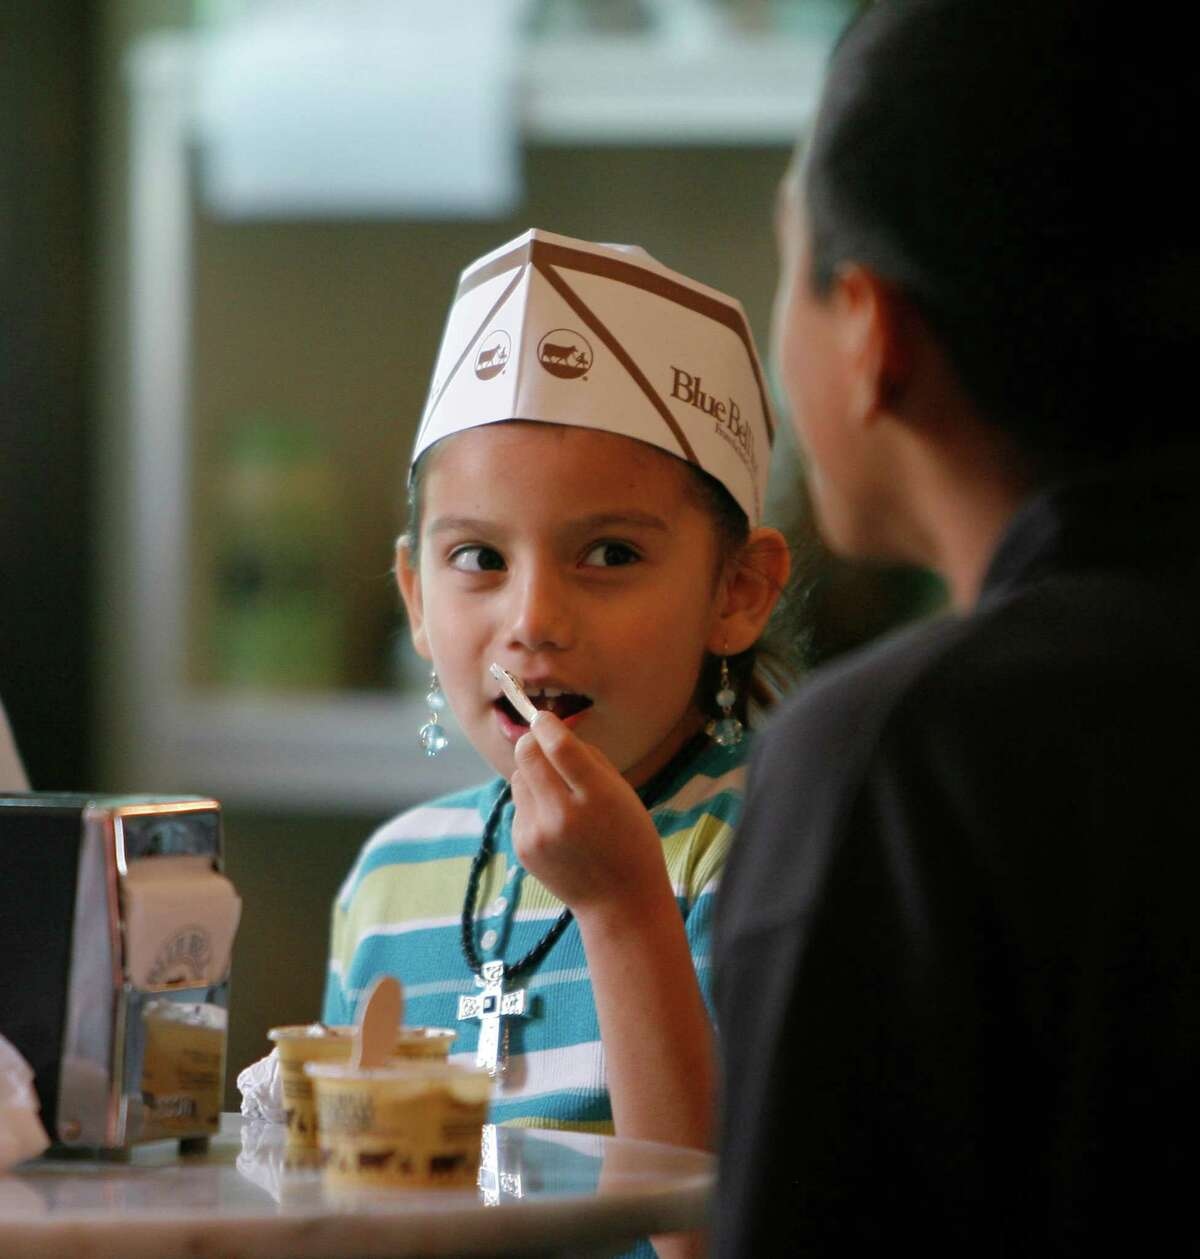 Jacquelynn Arteaga, age 7, has some Blue Bell ice cream with her cousin, Jesus Leon, 14, after taking a tour of the Blue Bell facilities in Brenham, Dec. 28, 2006.  Photo by Steve Campbell, Chronicle Staff